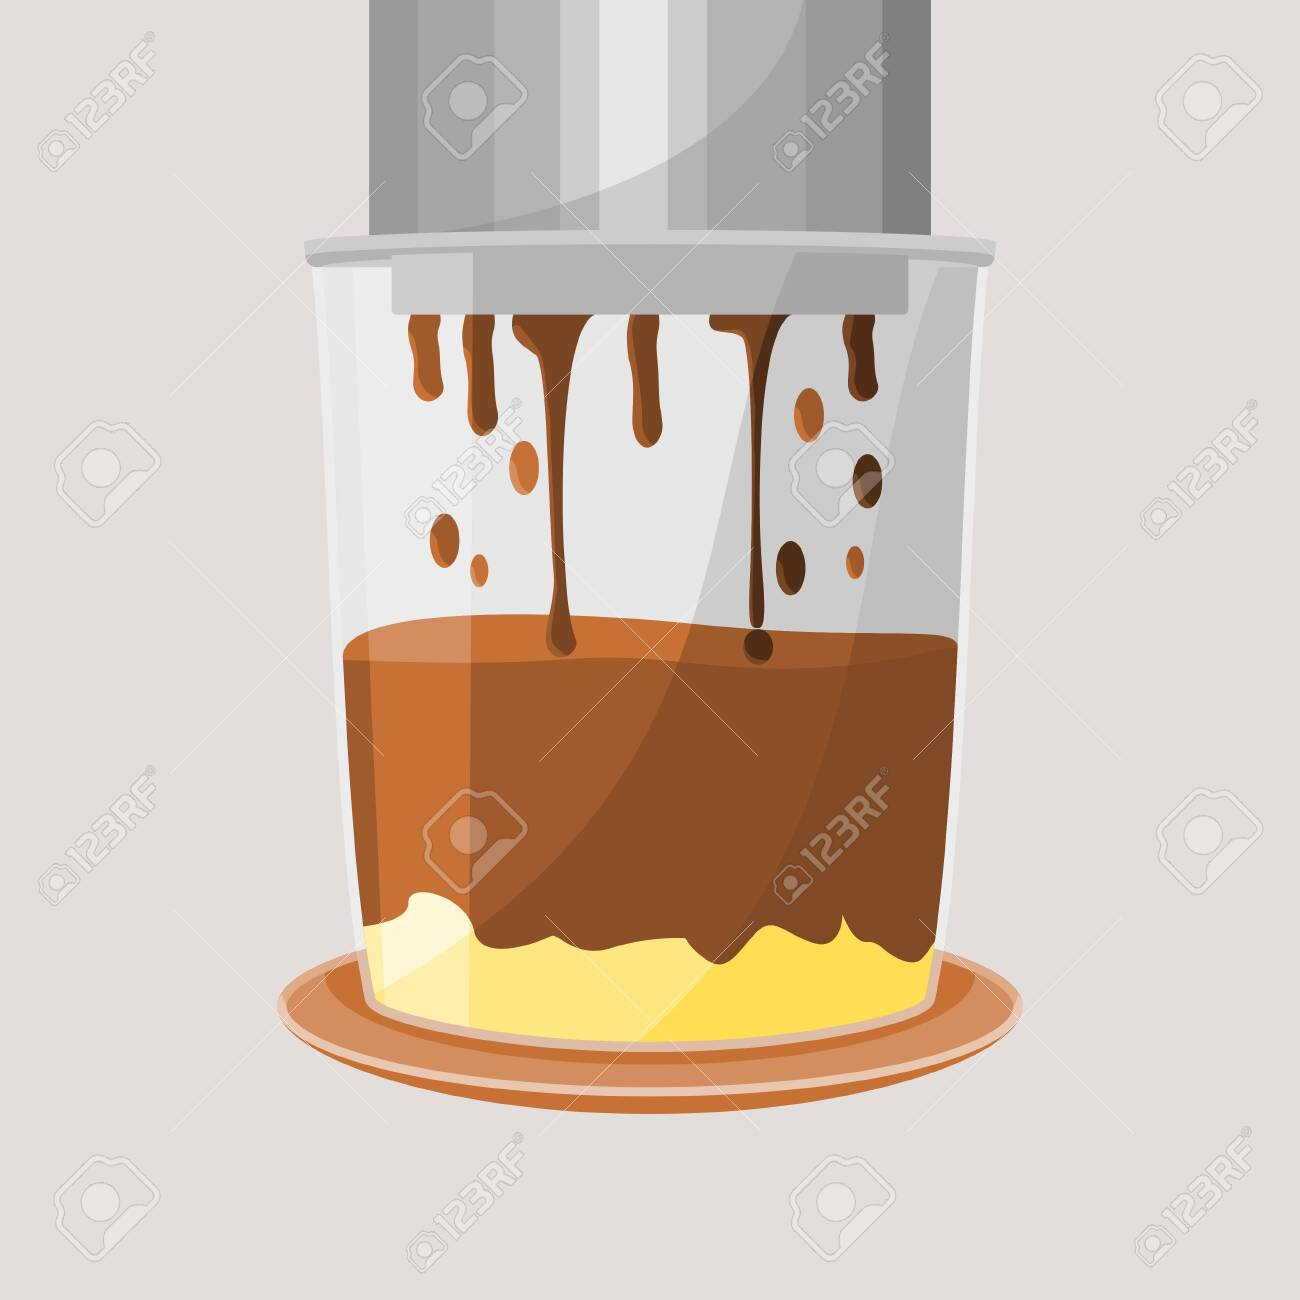 Editable Isolated Dripping Vietnamese Coffee With Condensed Milk Royalty Free Cliparts Vectors And Stock Illustration Image 137411769